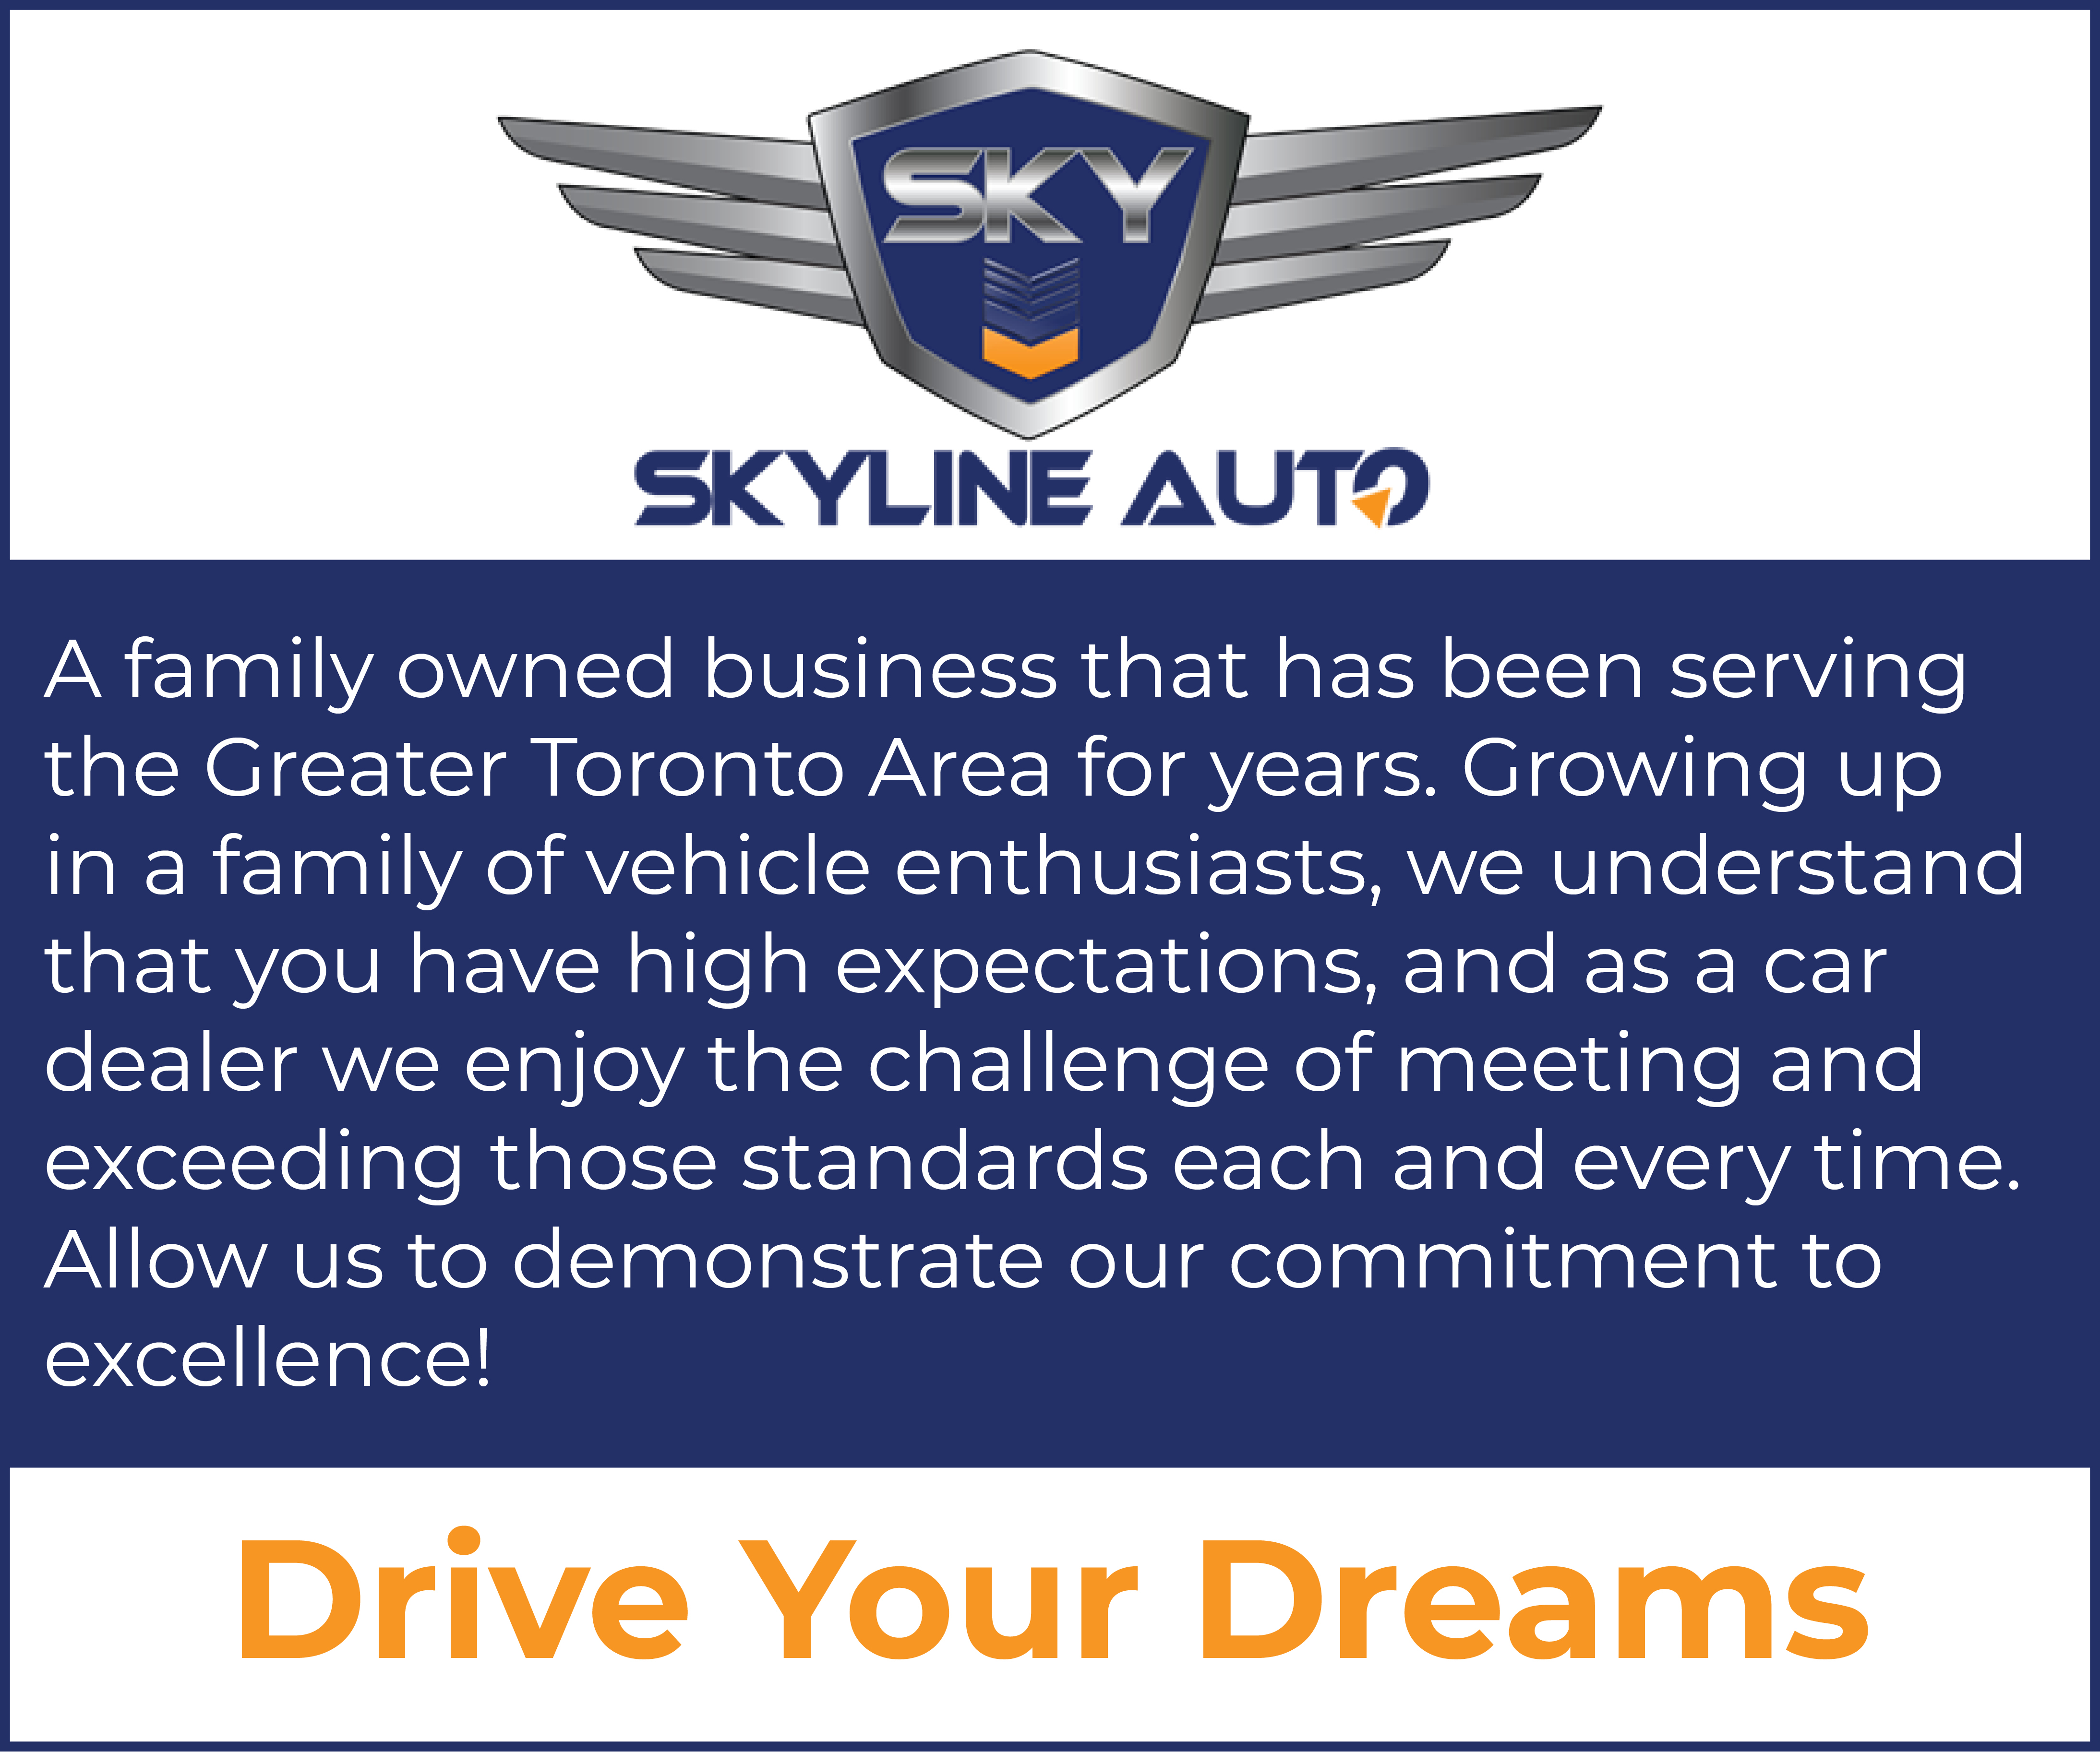 More from Skyline Automotive